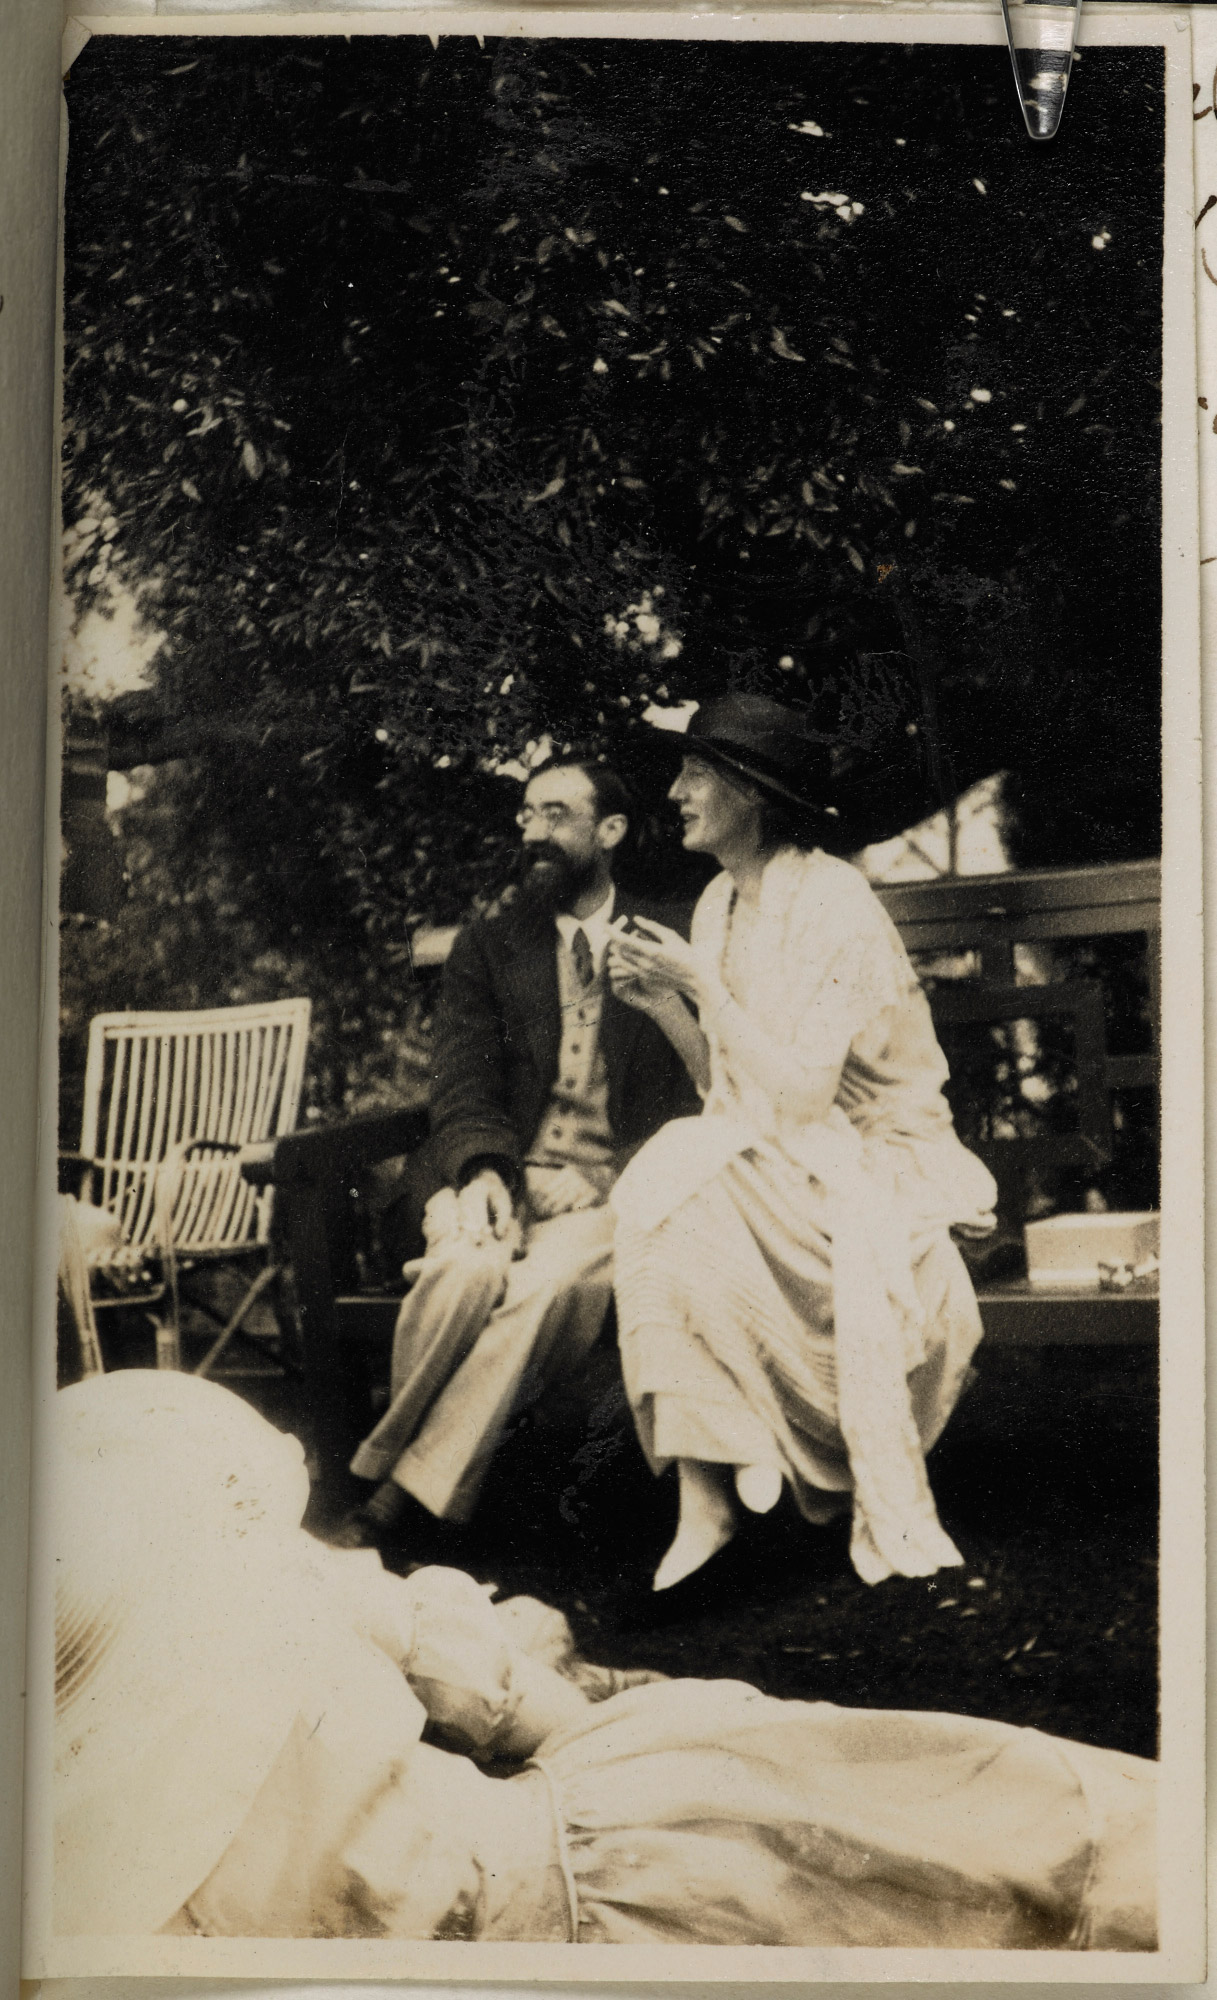 Journal of Lady Ottoline Morrell, June 1923, with photographs and accounts of Virginia Woolf